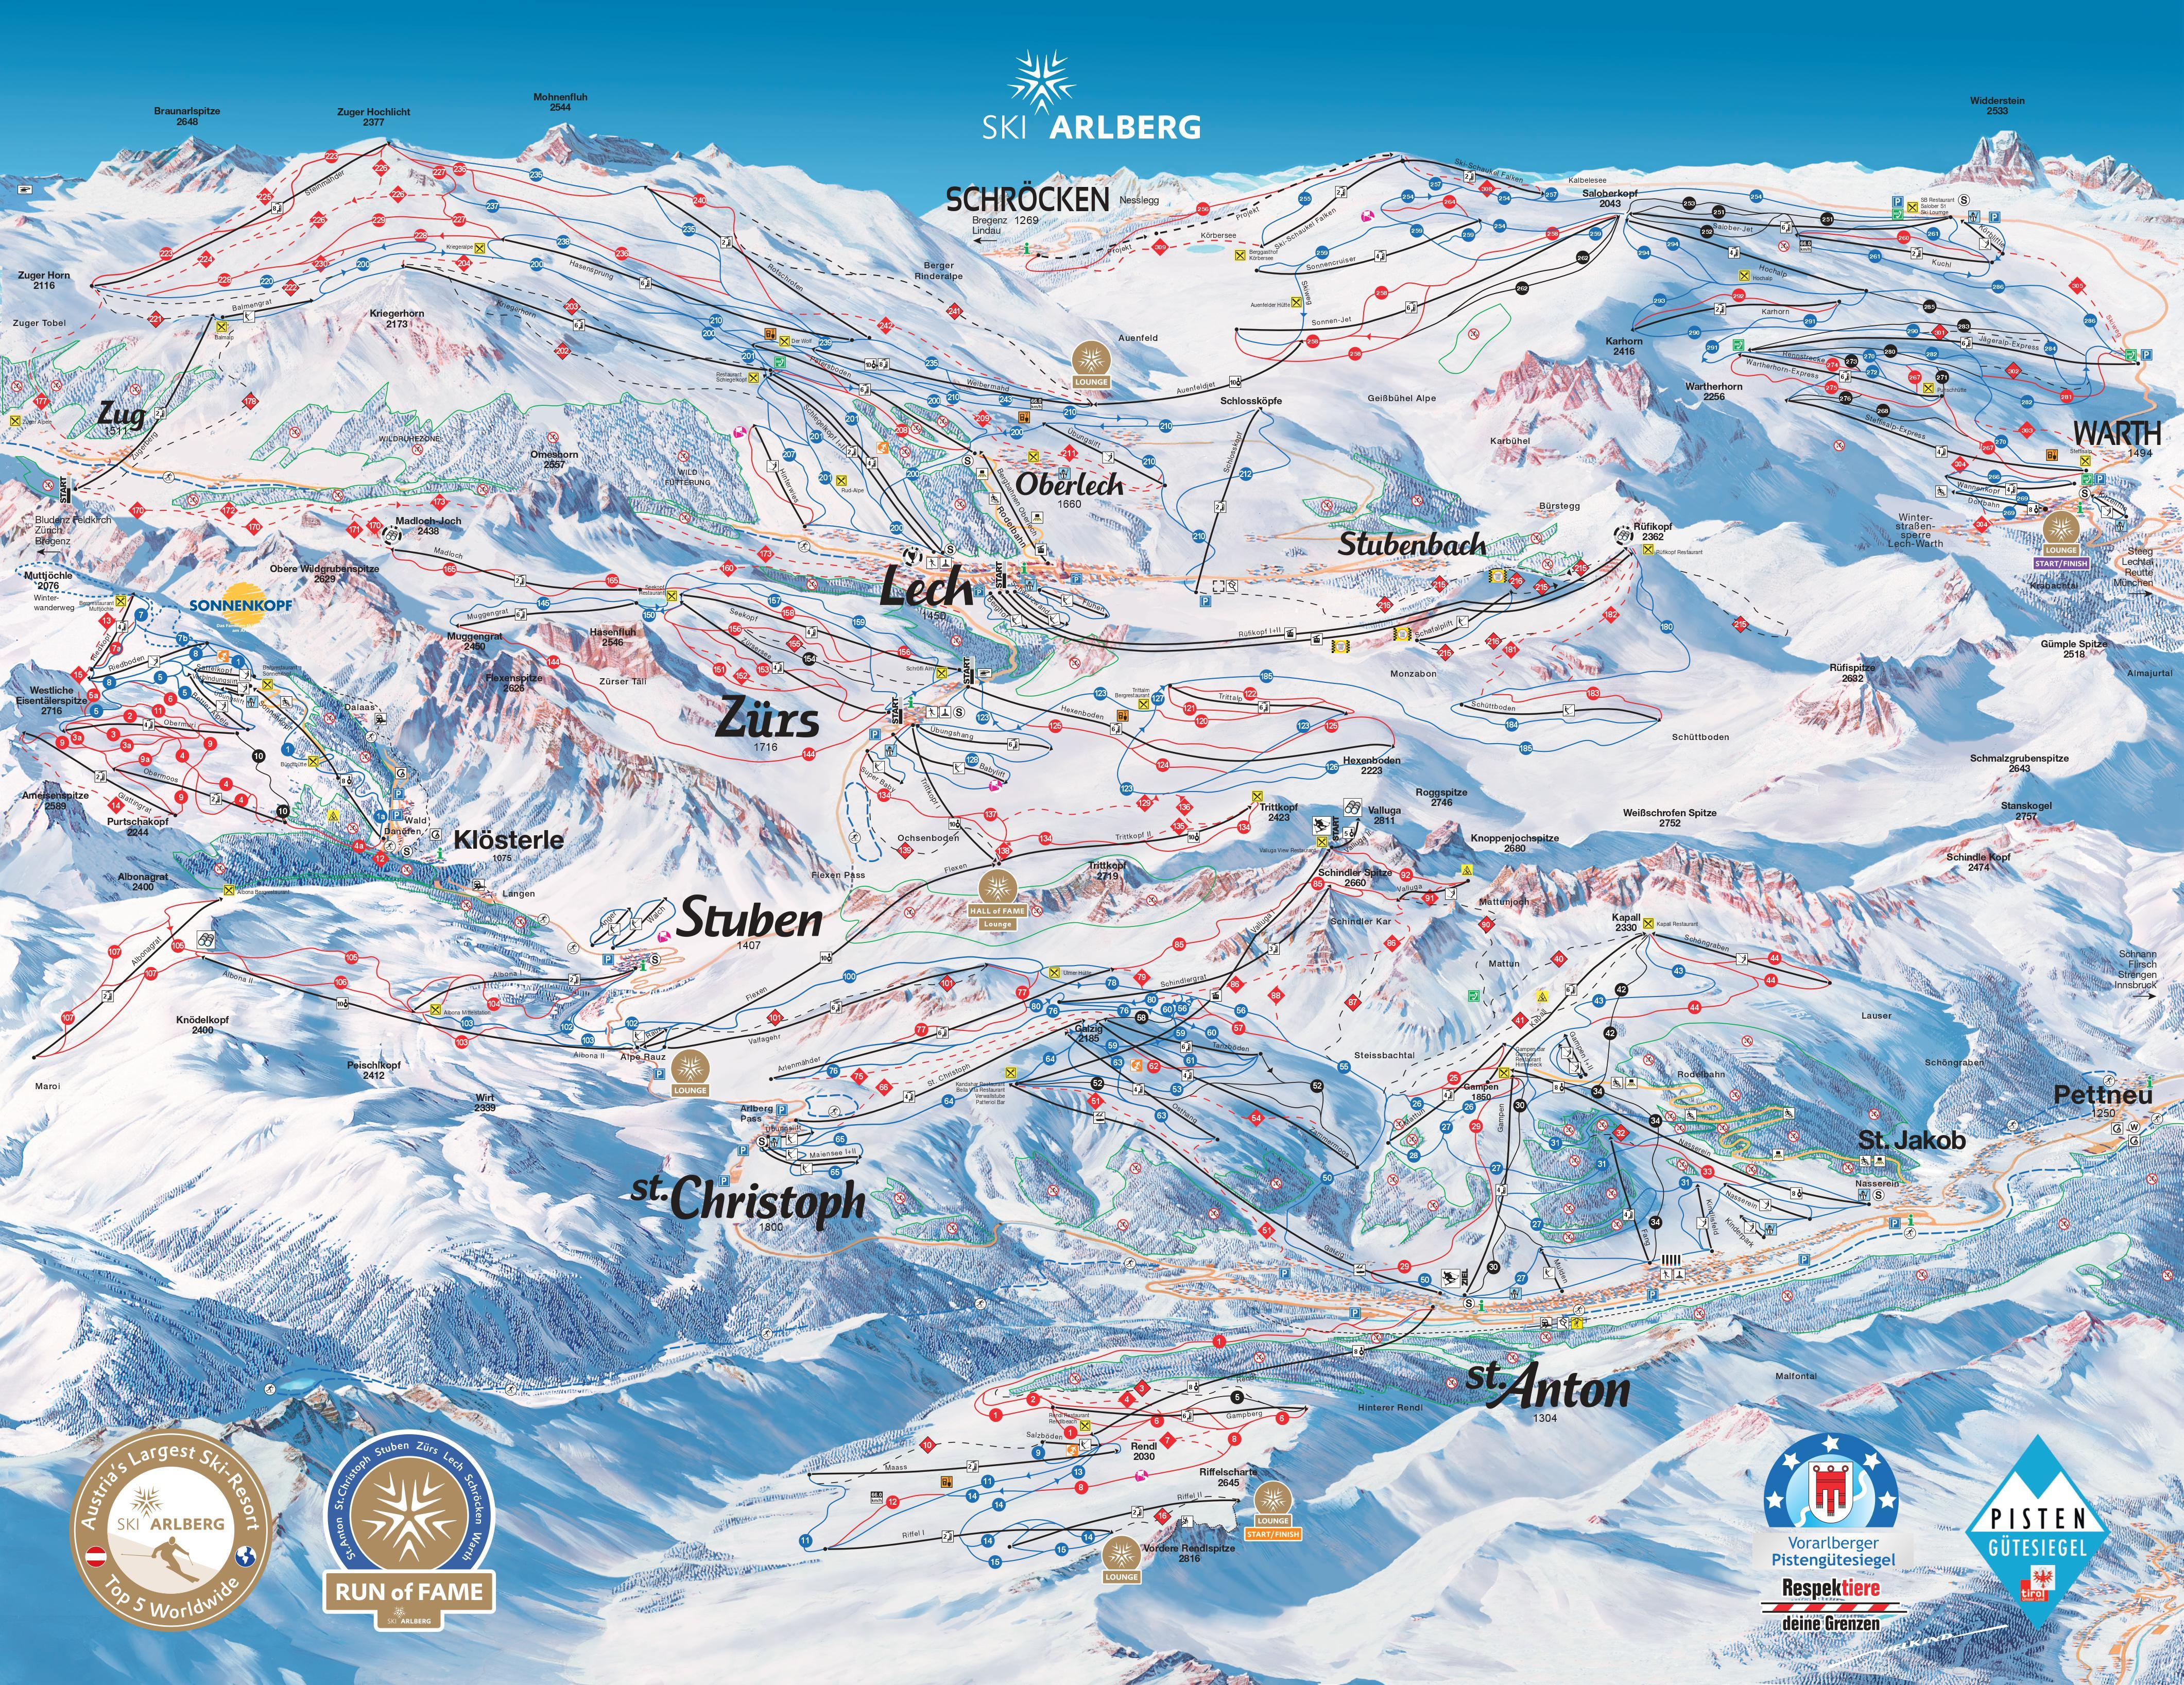 Lech Piste Map Lech Zürs am Arlberg Piste Map | Plan of ski slopes and lifts  Lech Piste Map